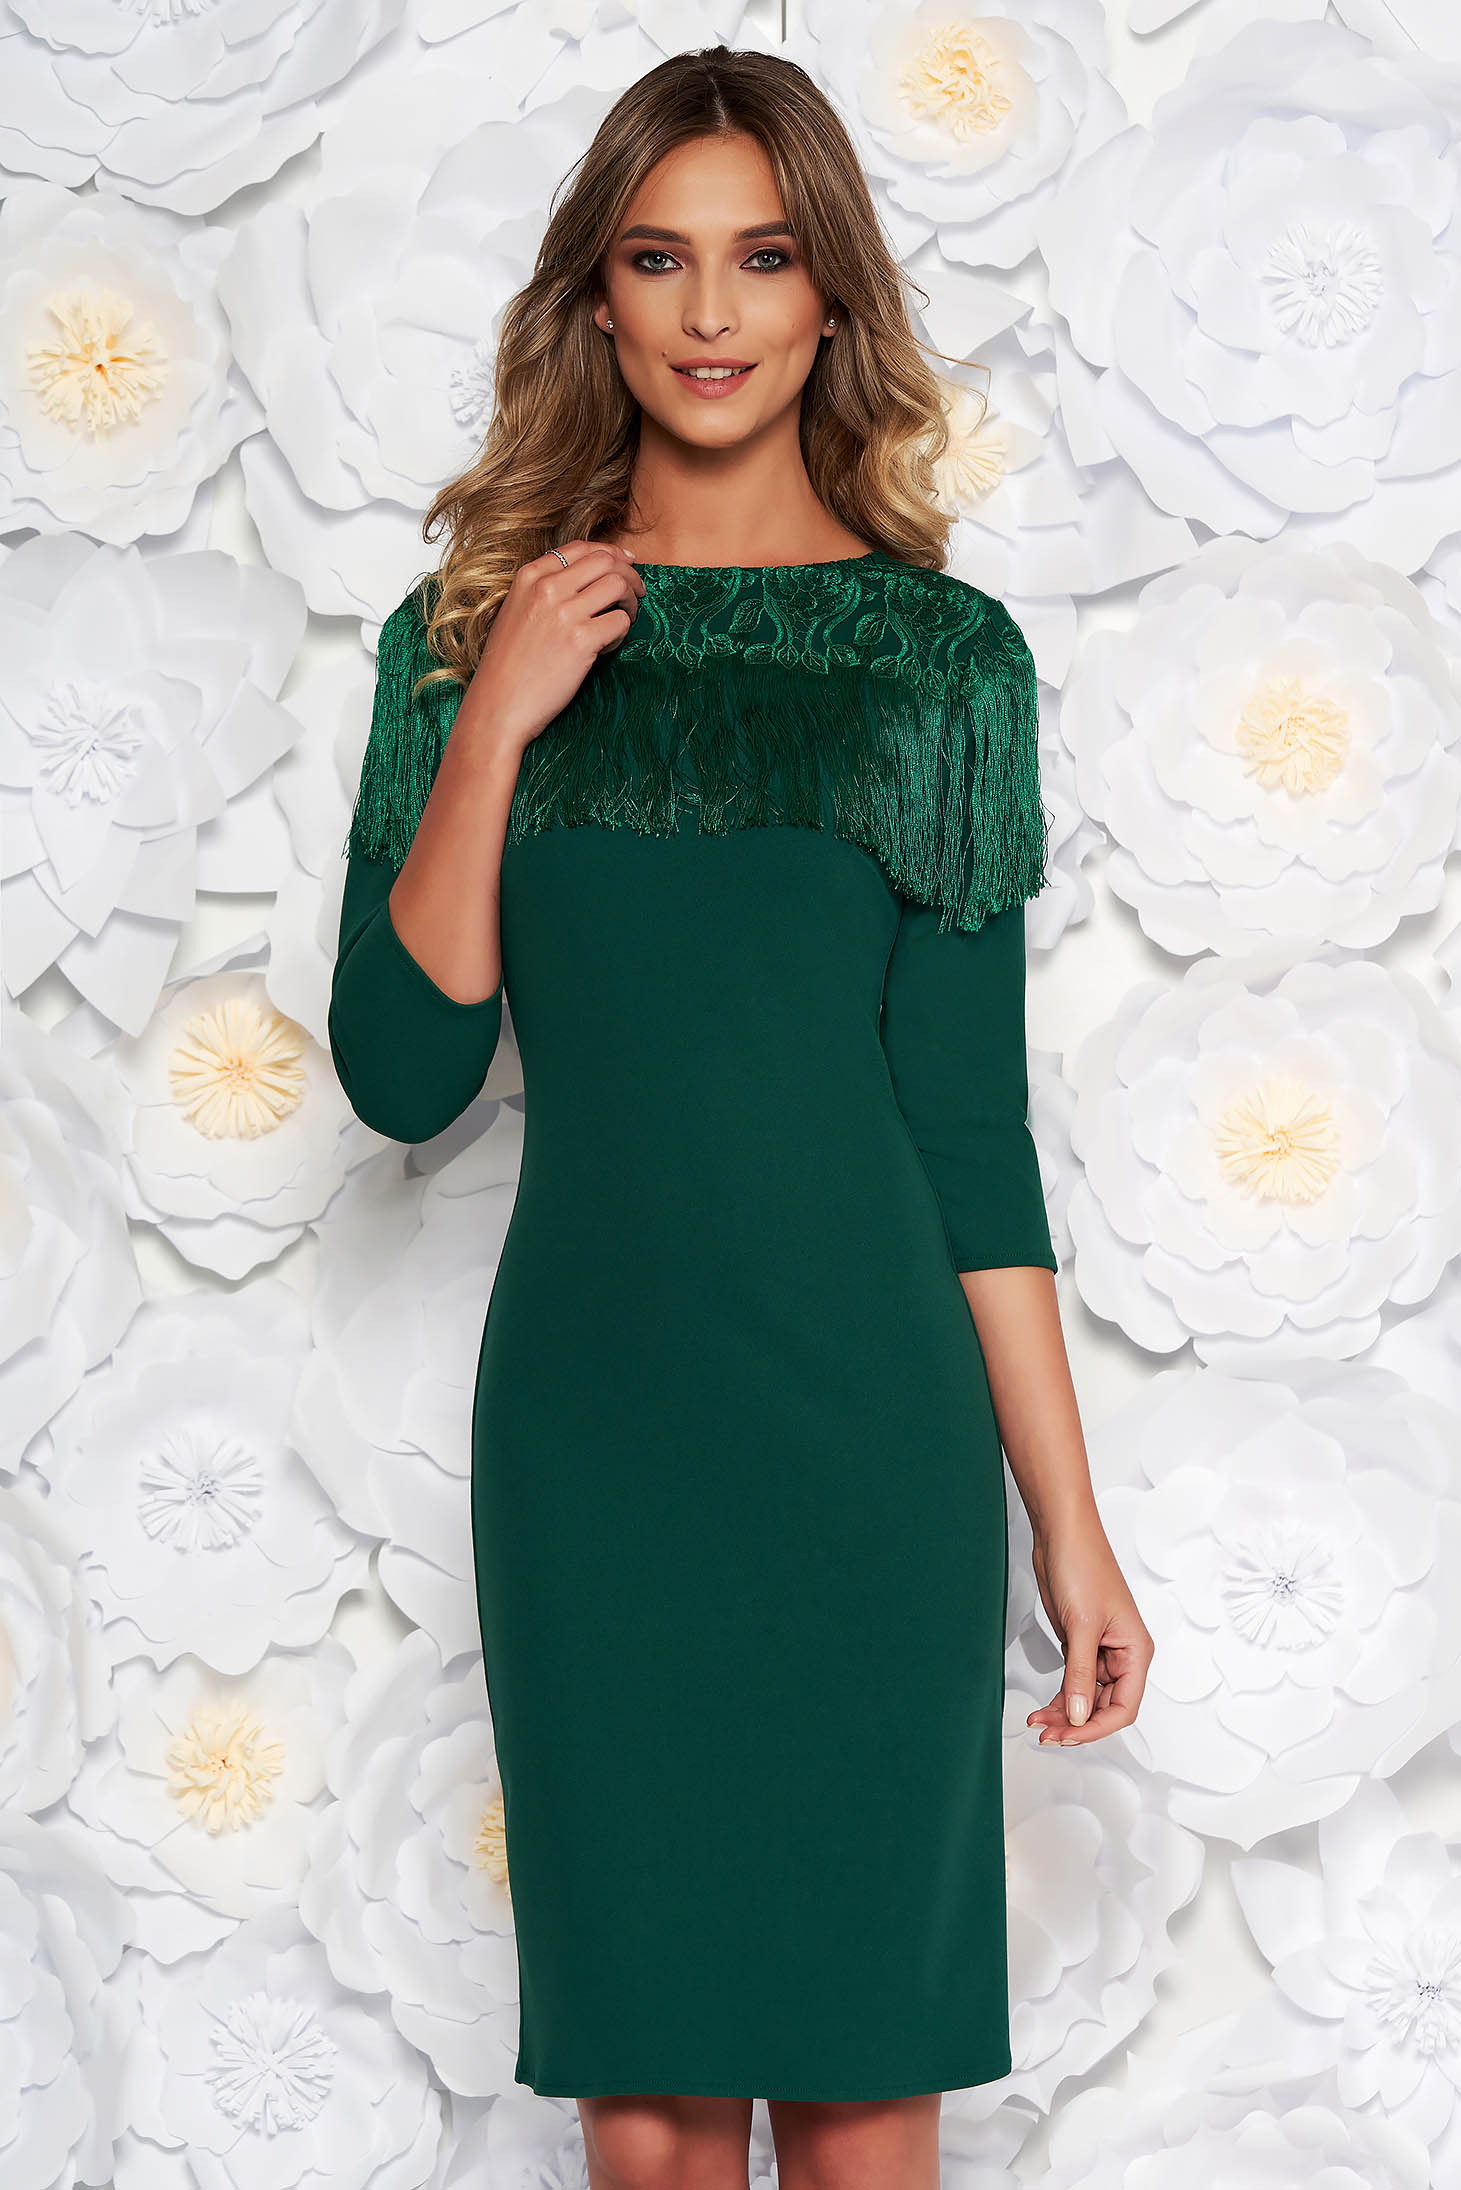 Green elegant midi pencil dress slightly elastic fabric fringes with lace details